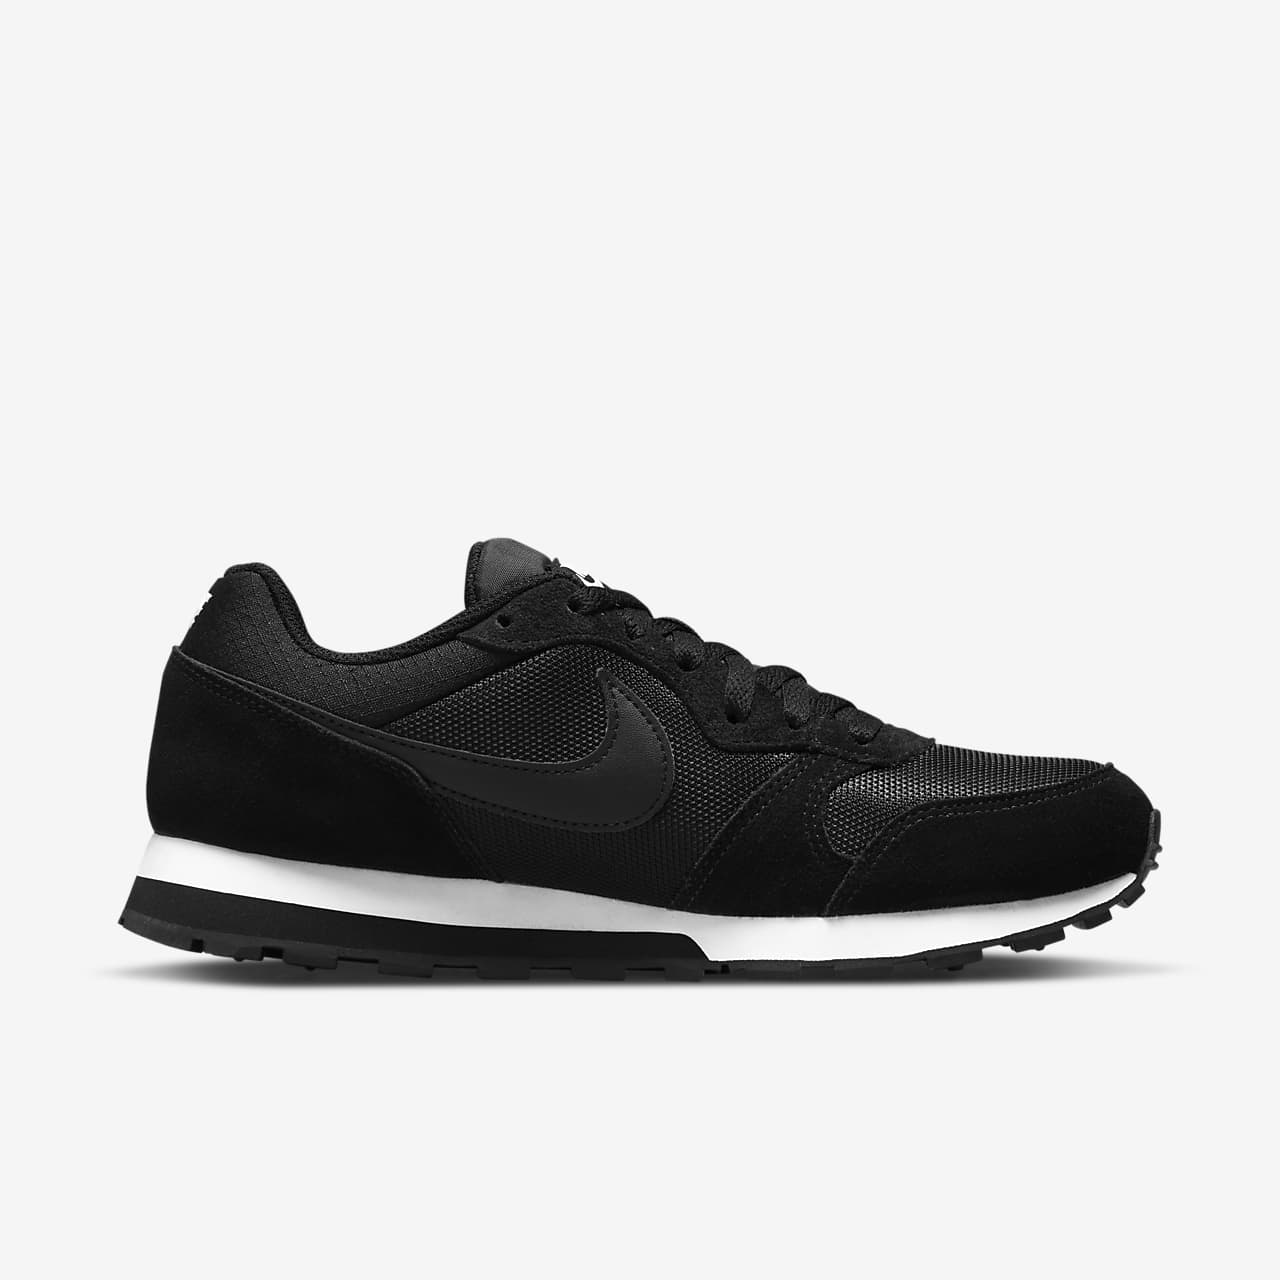 Femme Ca 2 Runner Nike Chaussure Md Pour awXAfx